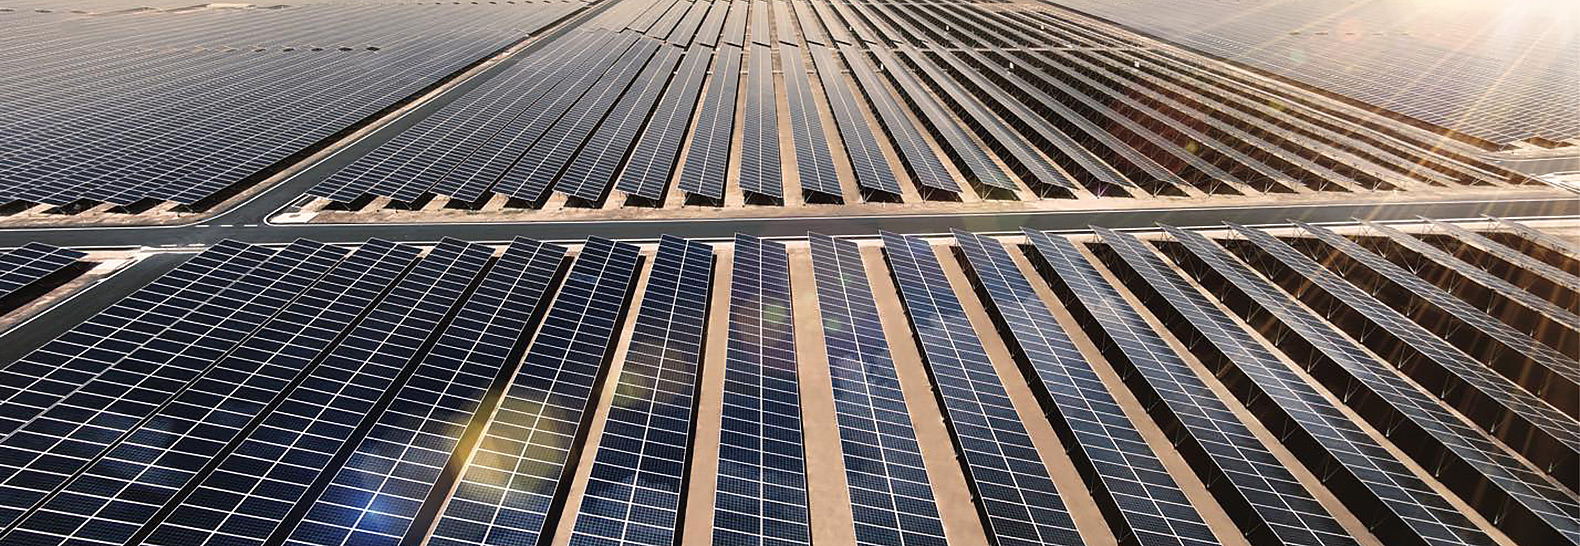 Phase 3 of world's largest solar park slated to begin this month